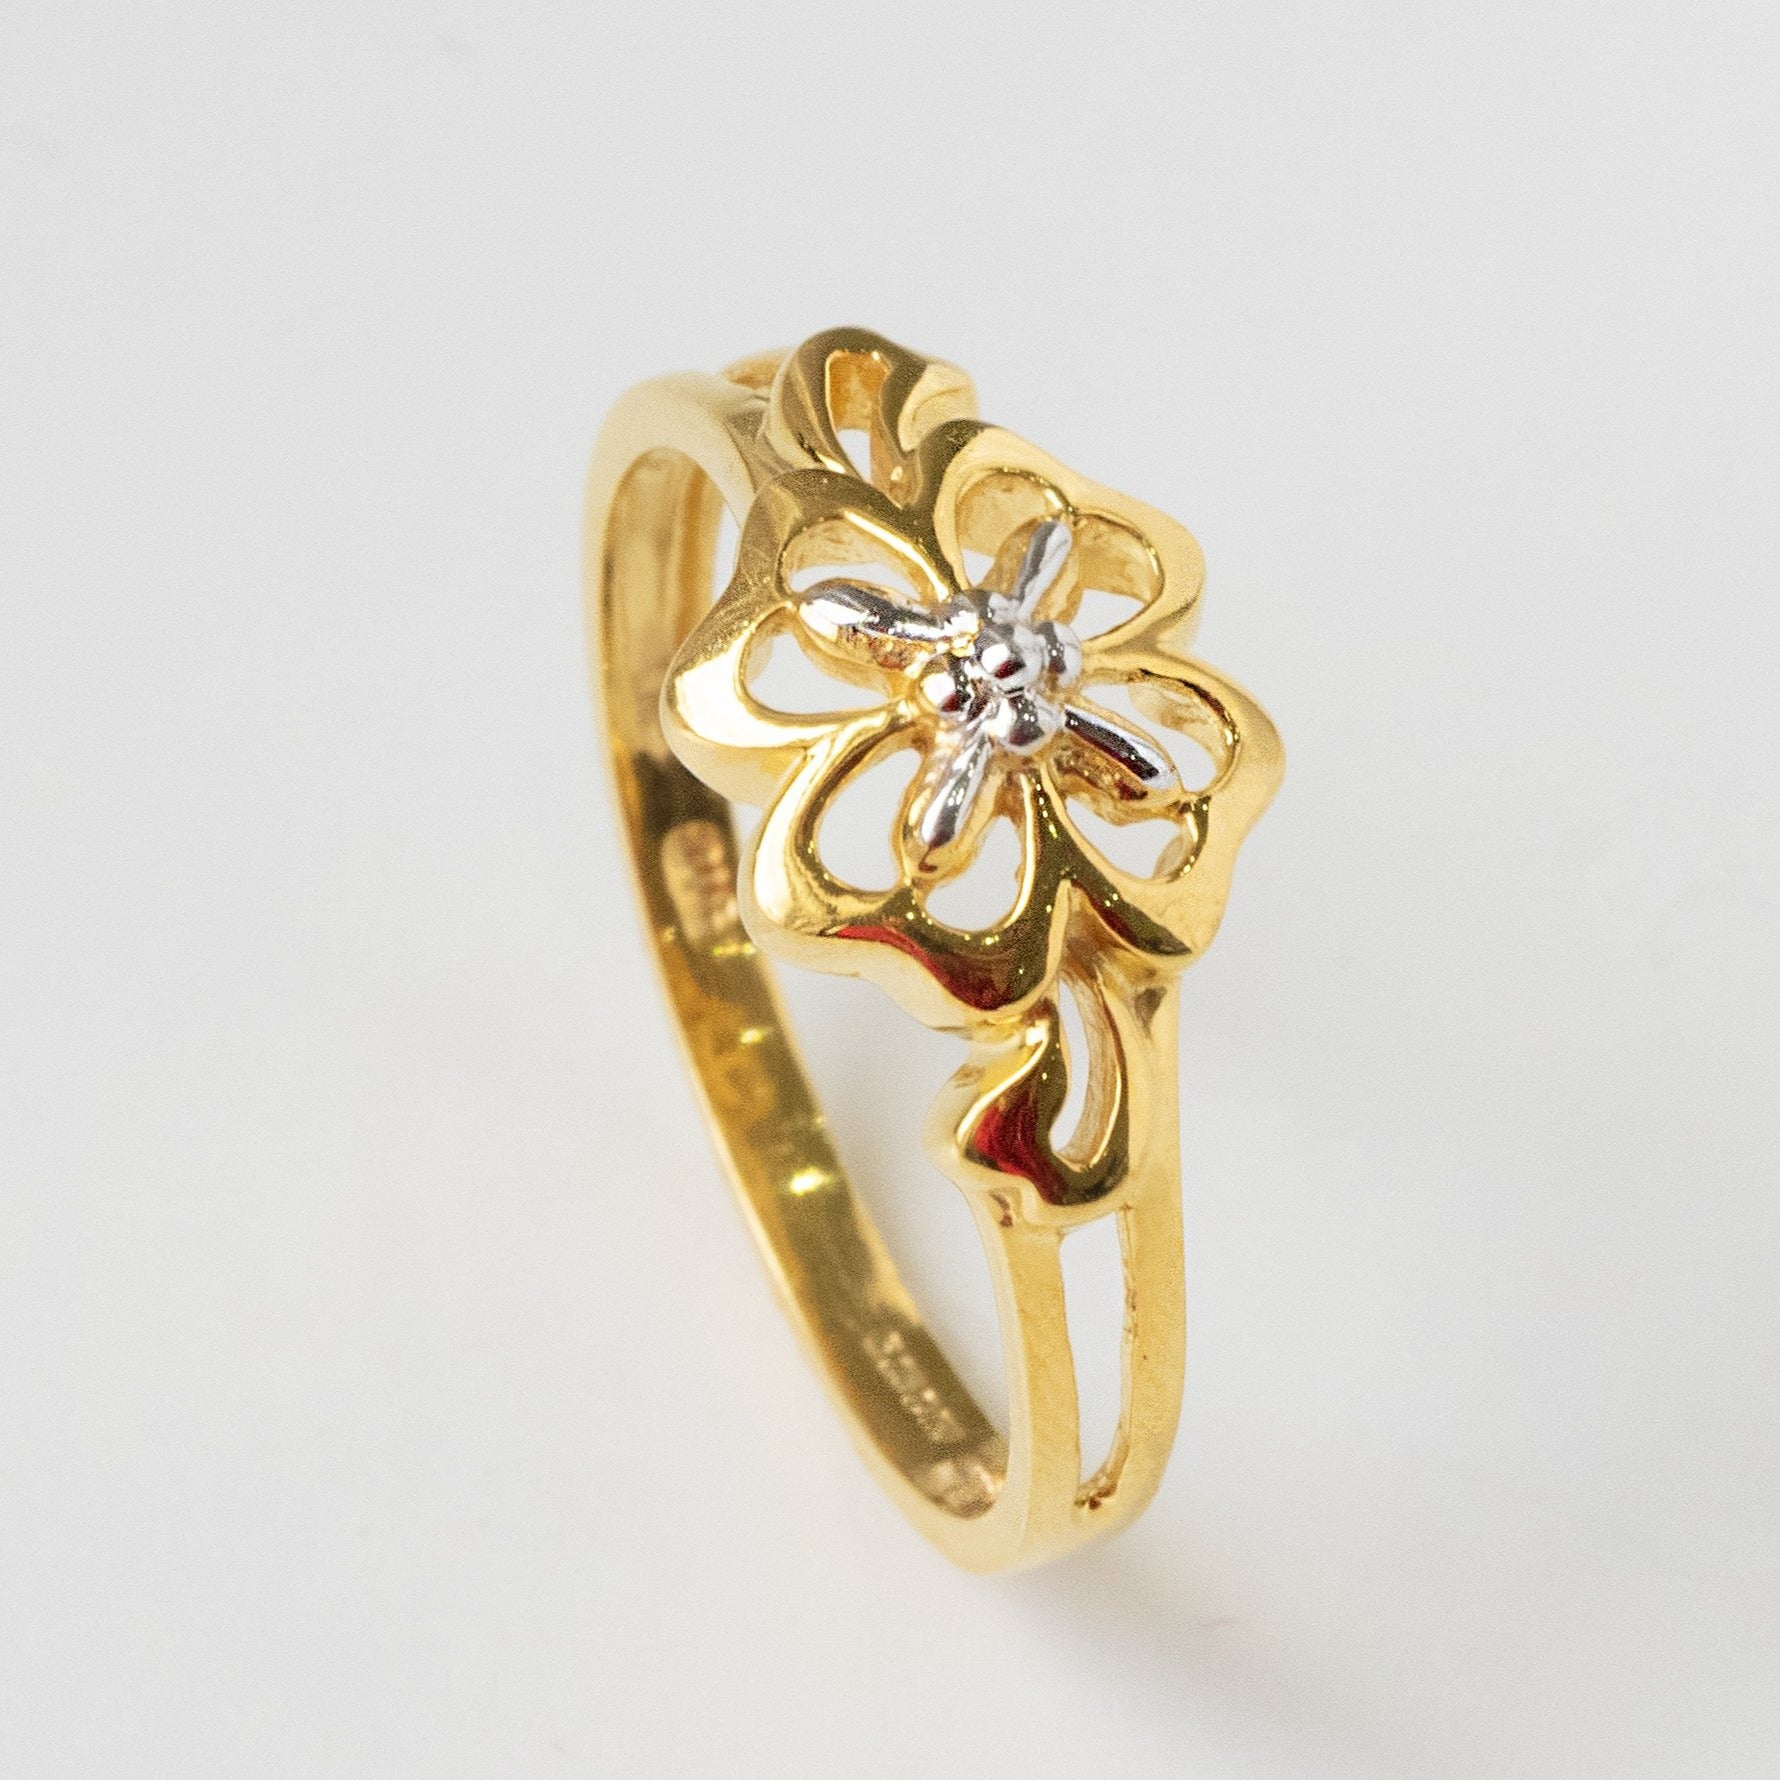 22ct Gold Dress Ring with Four Leaf Clover Design (3.53g) PLR19004